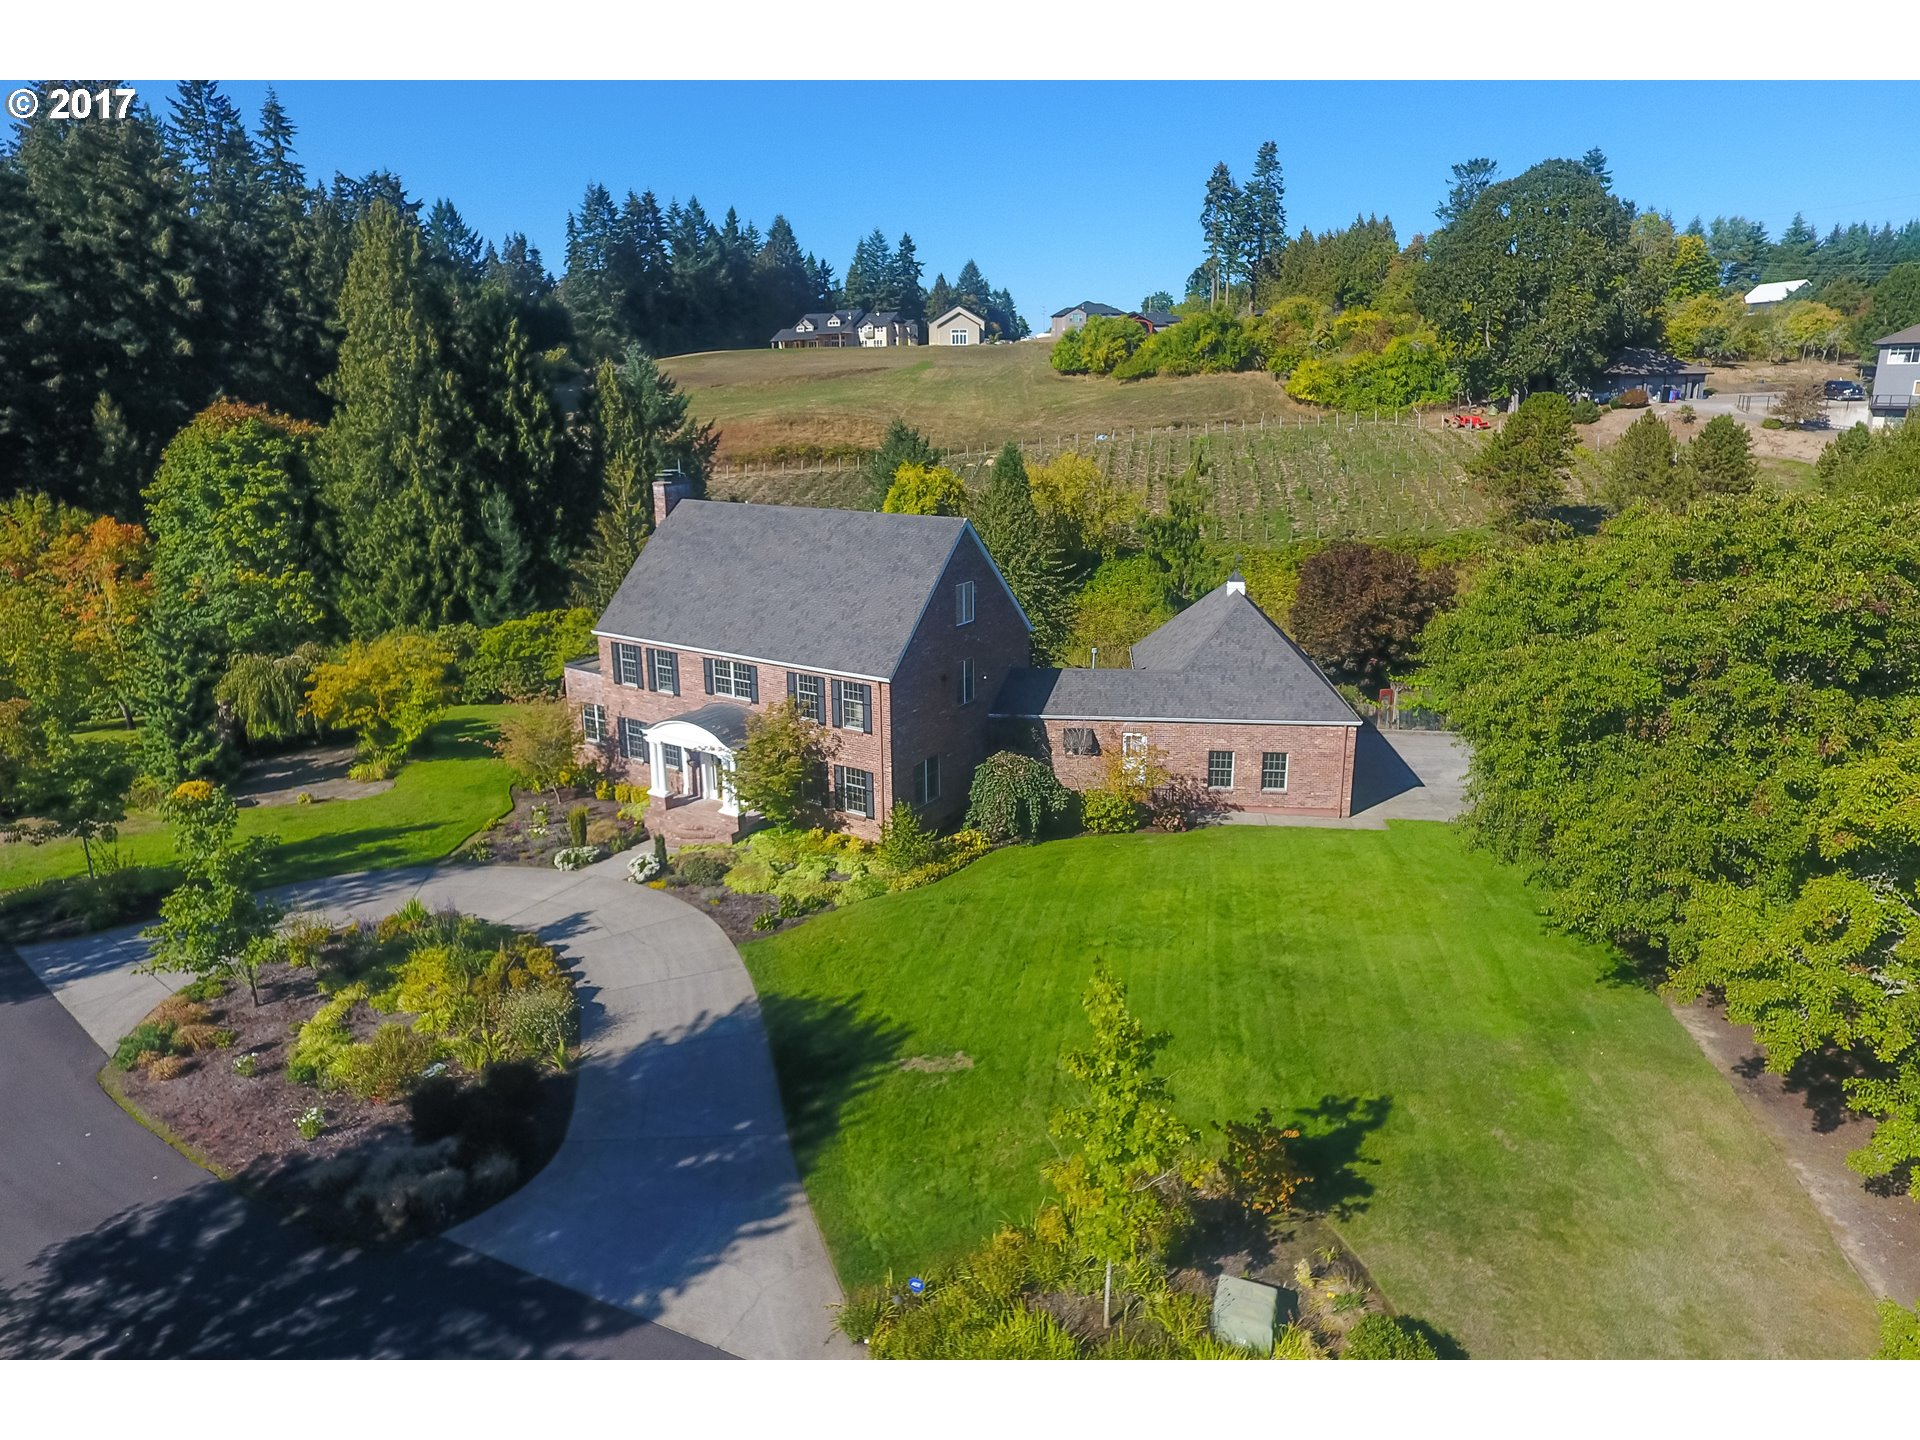 3618 NW BLISS RD, Vancouver, WA 98685